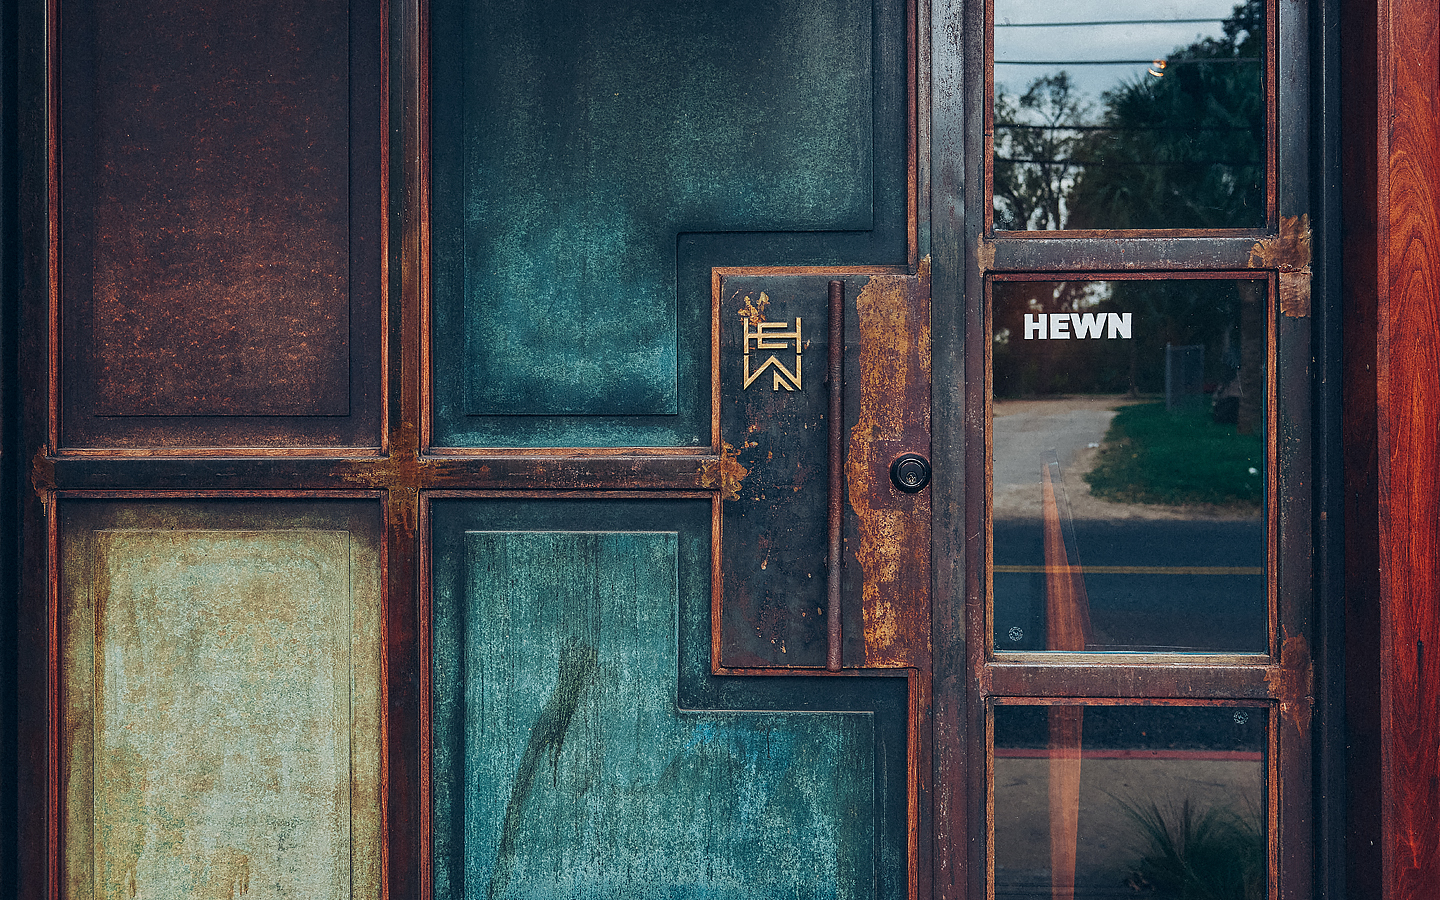 Logo and signage for woodworking shop Hewn designed by Föda, United States